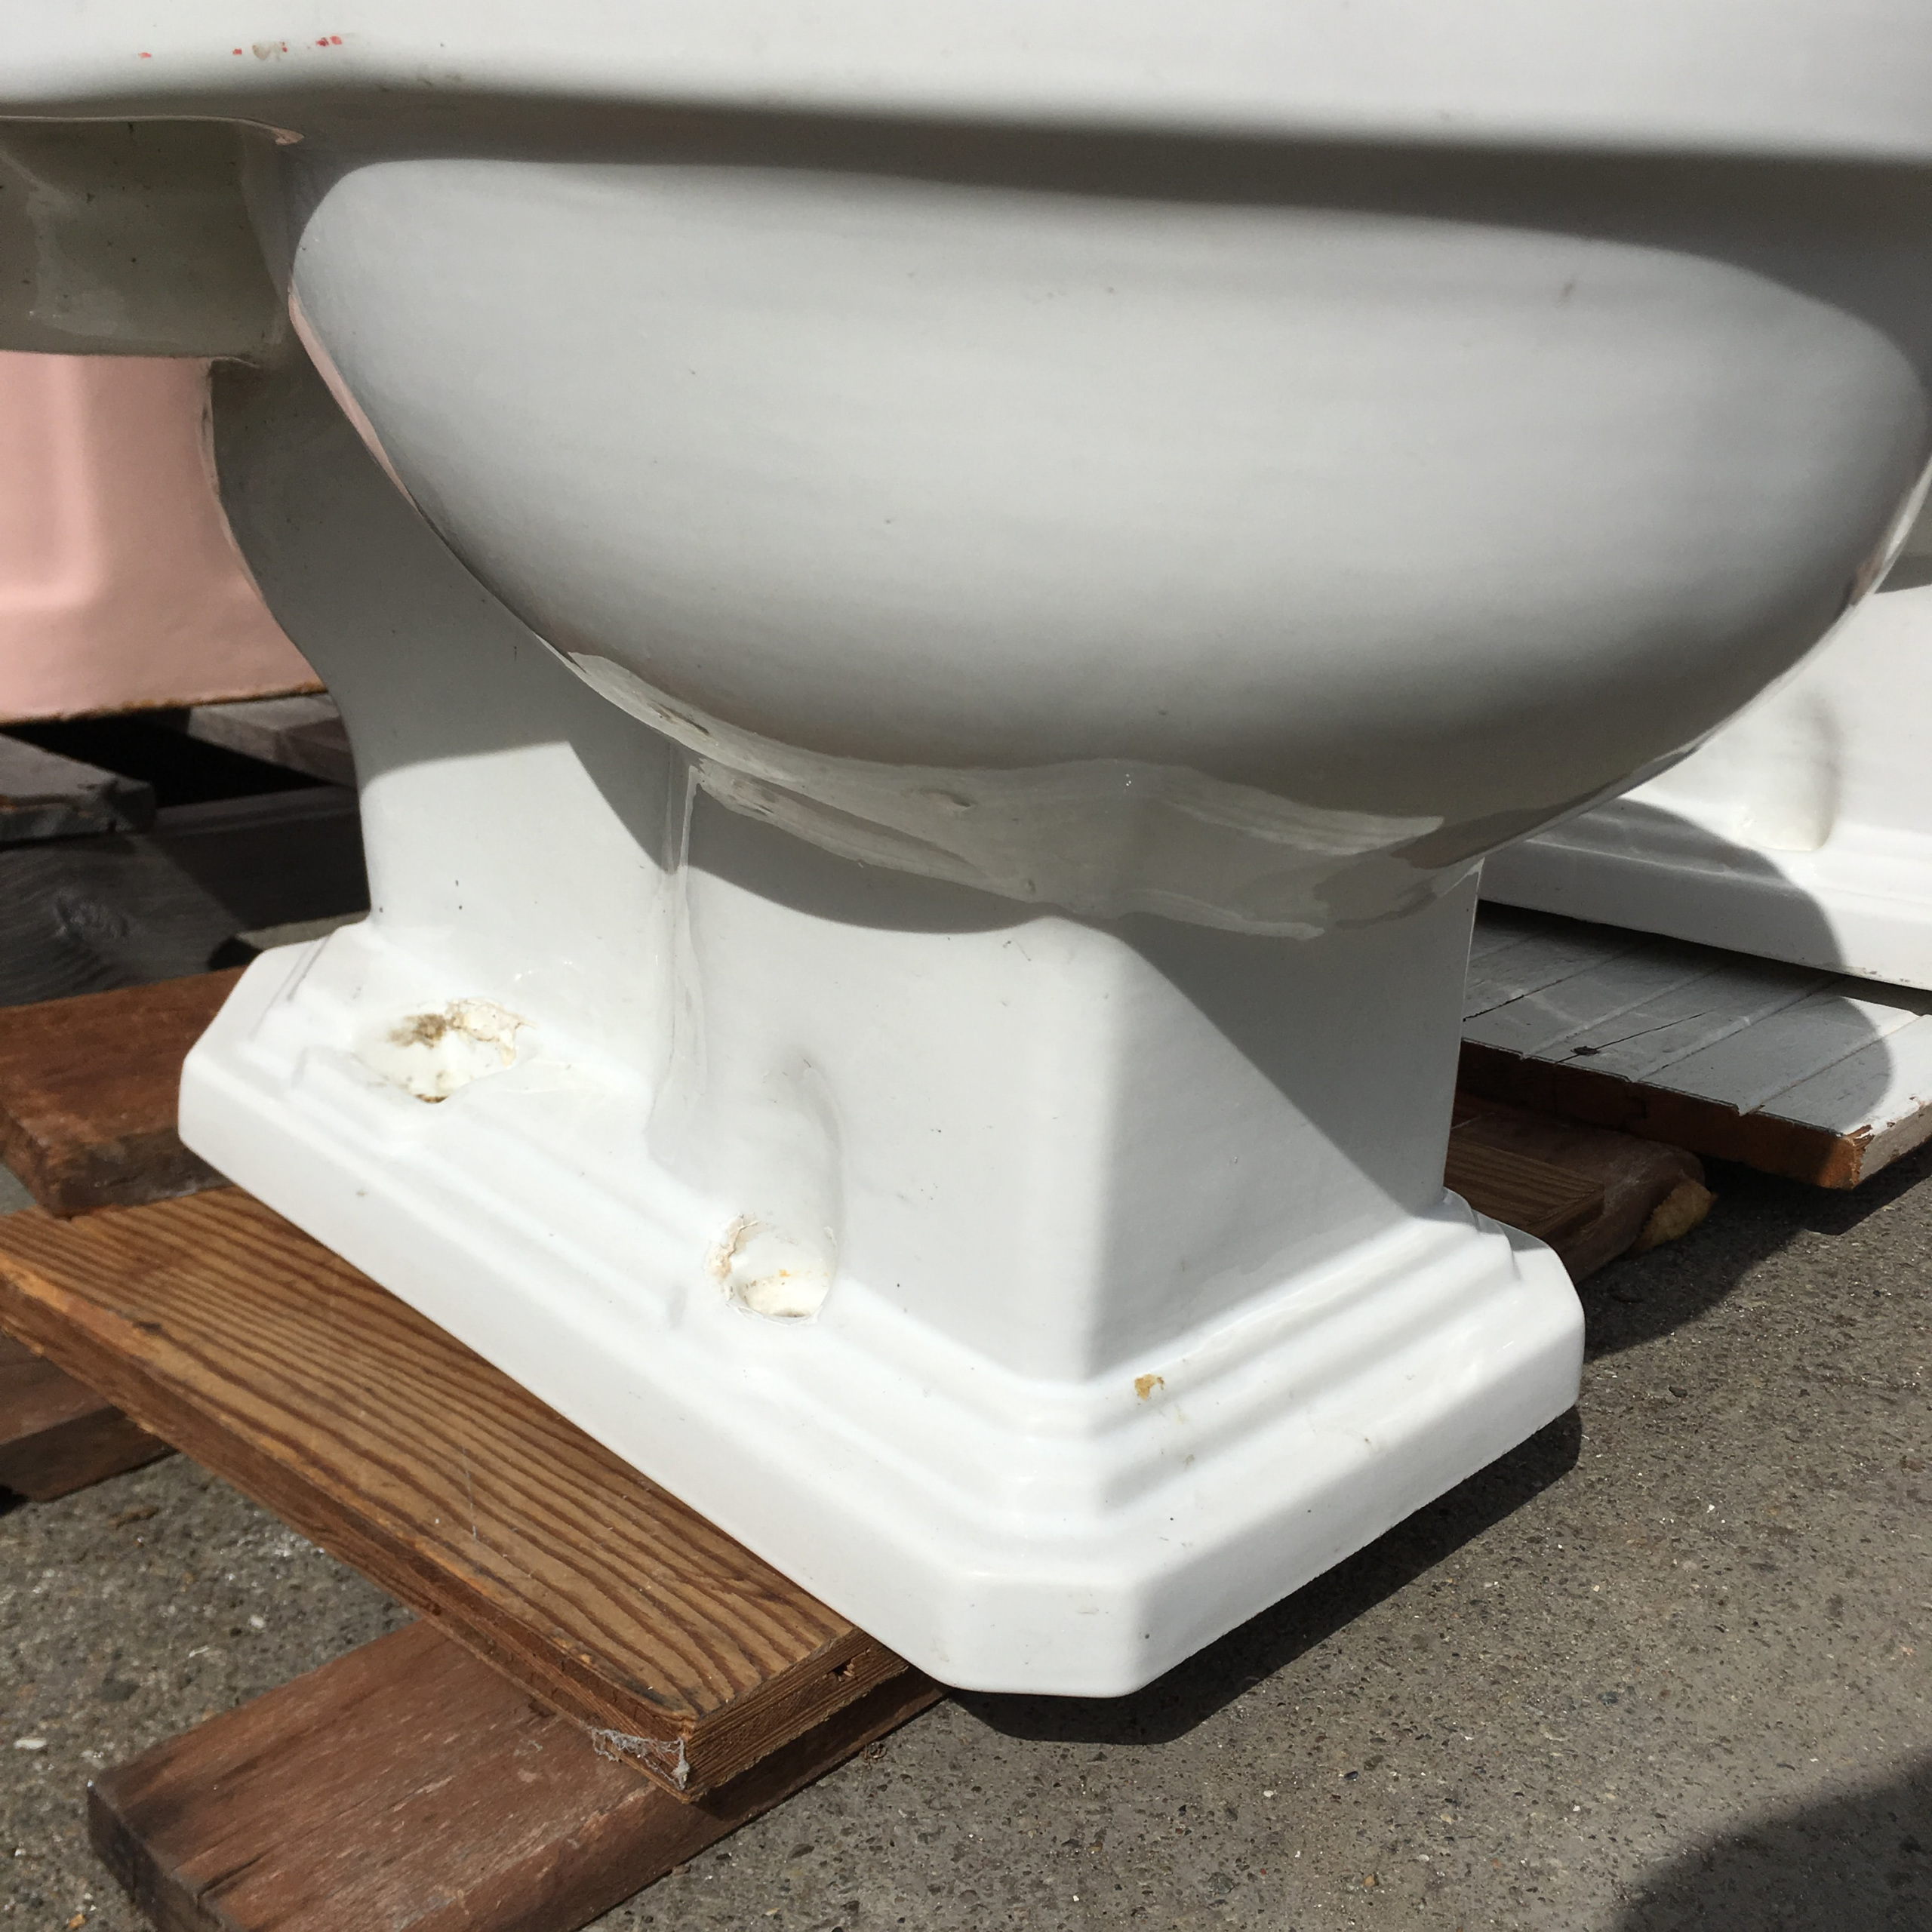 American Standard Low One Piece Toilet